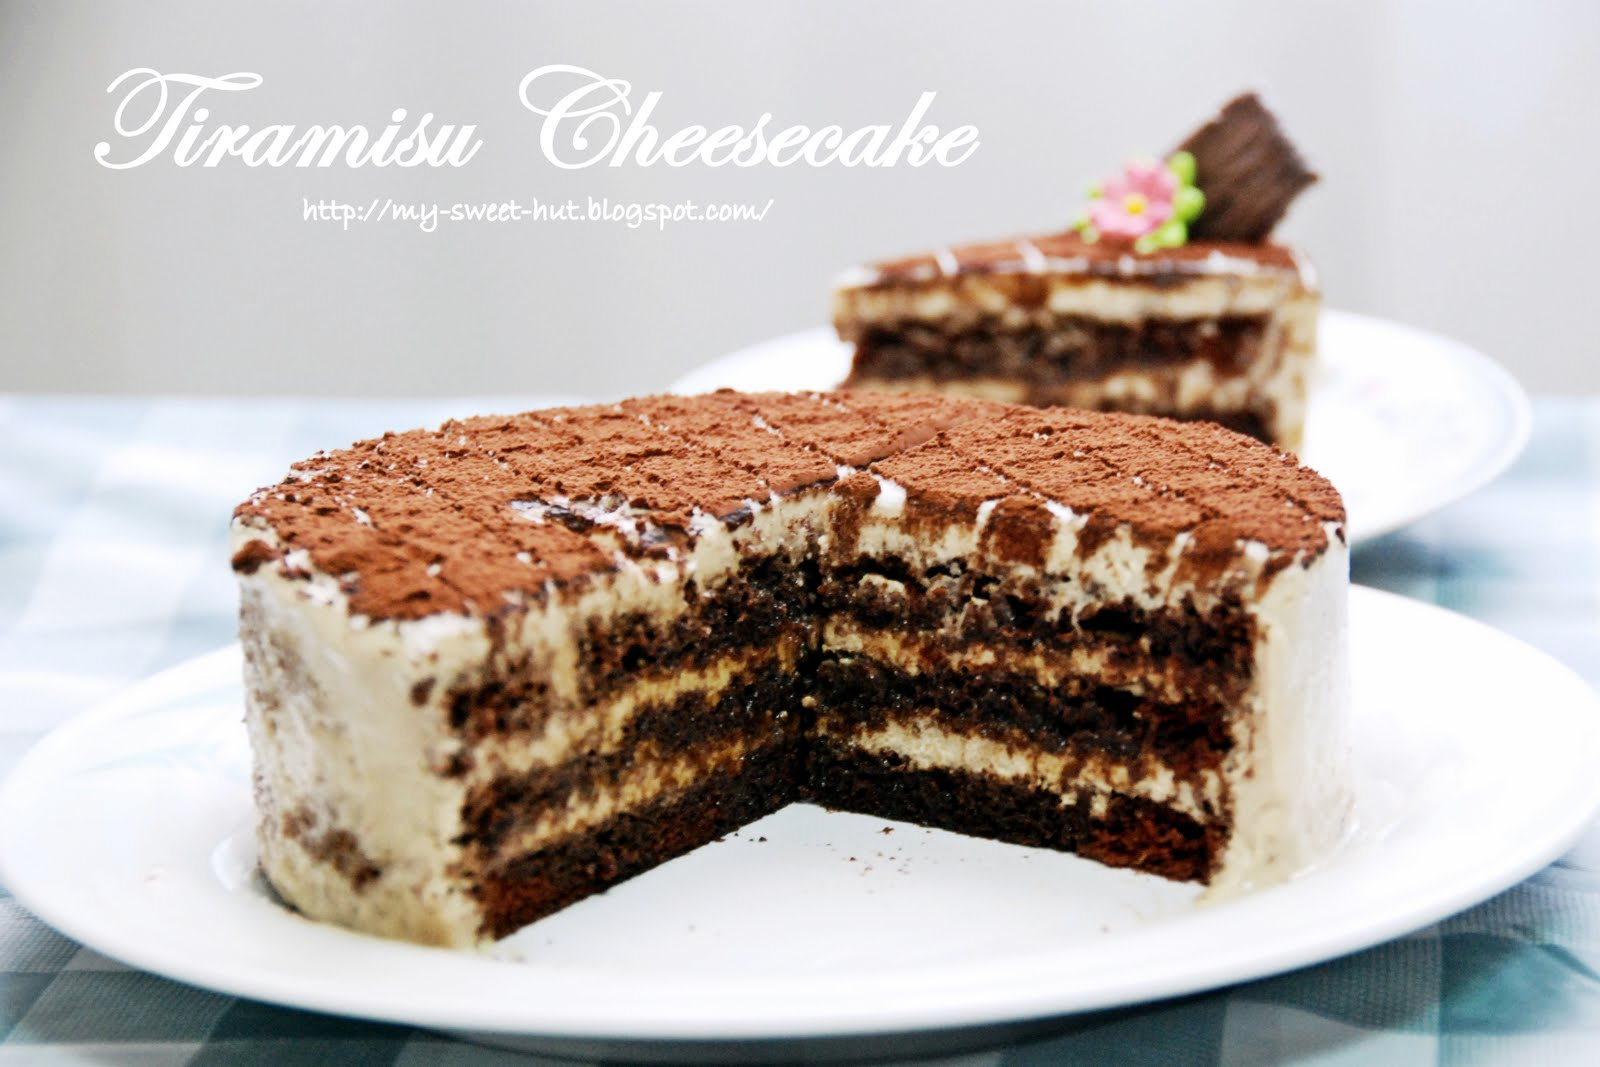 my-sweet-hut: Tiramisu Cheesecake